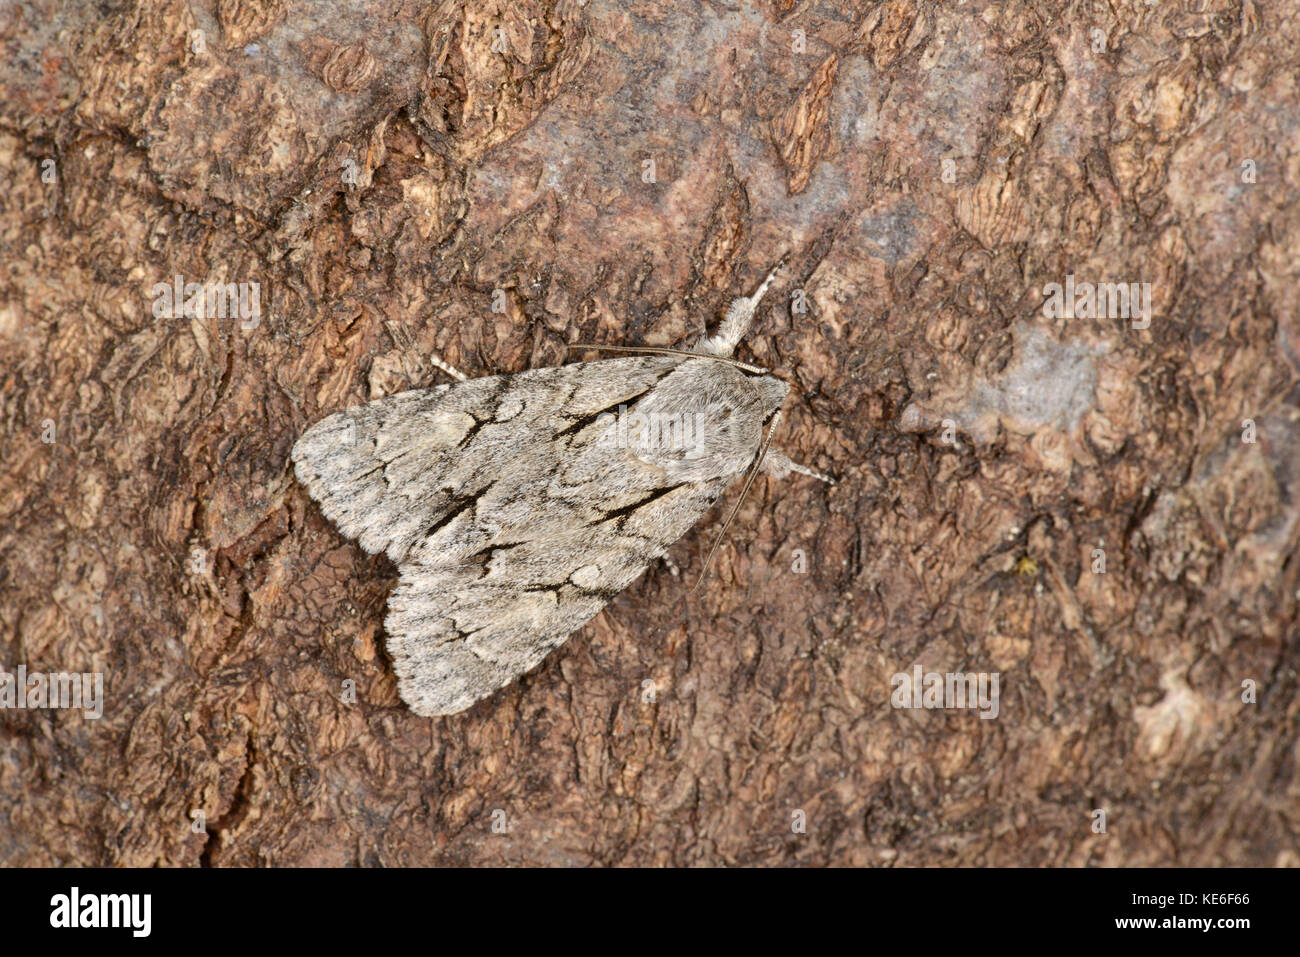 Grey Dagger Moth (Acronicta psi) adult at rest on tree trunk, Monmouth, Wales, May - Stock Image